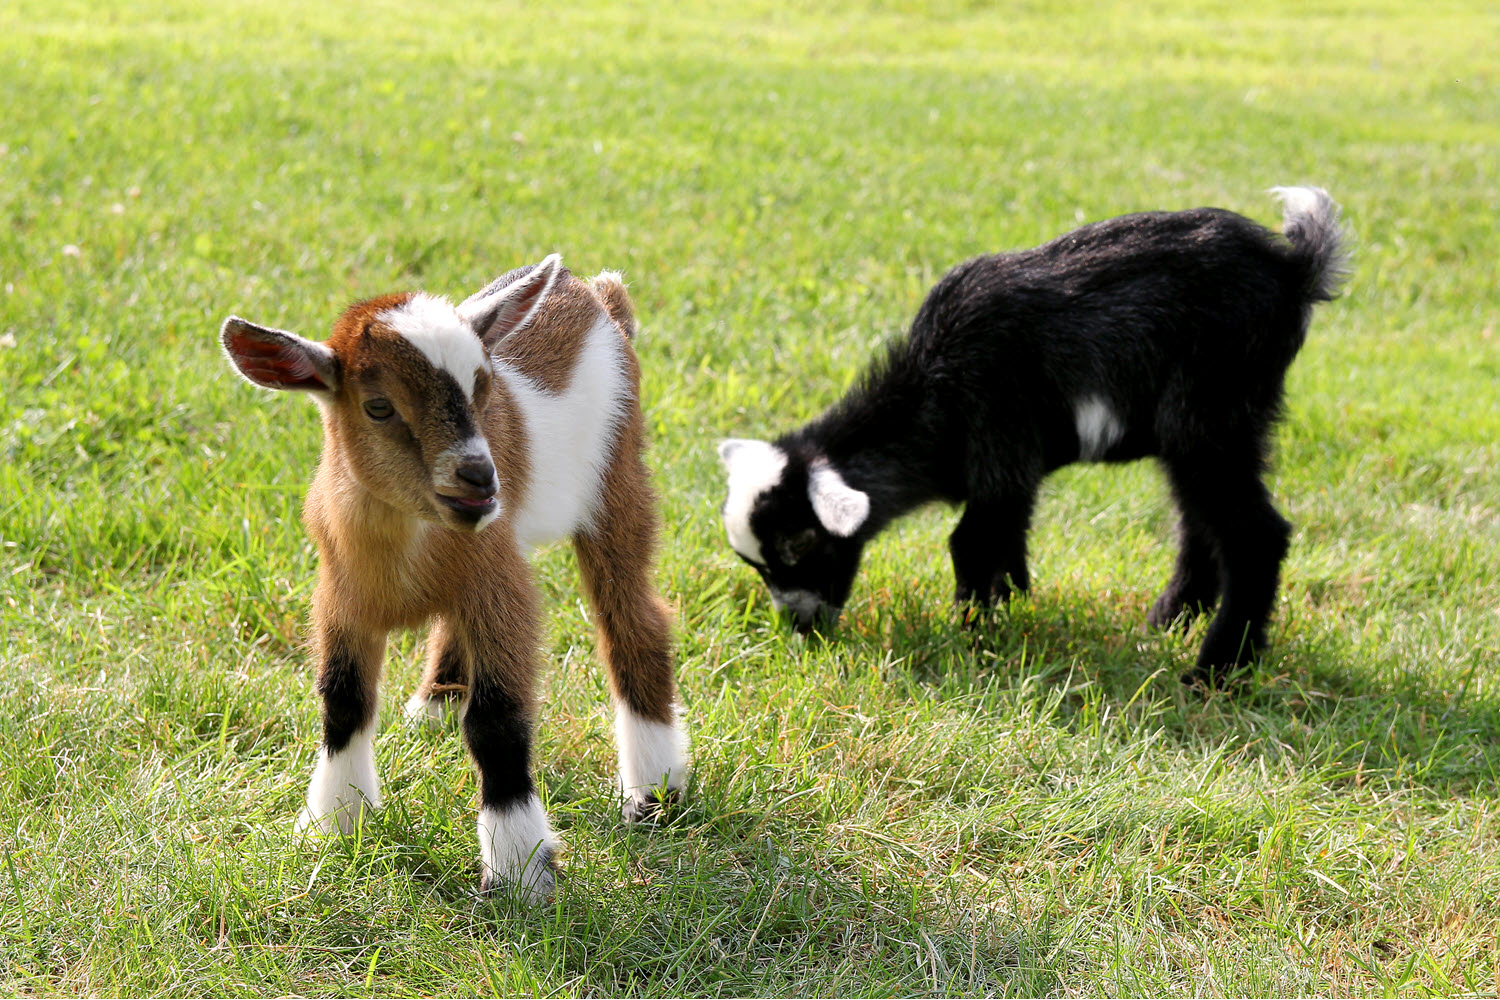 Young baby goats grazing on grass on a farm.